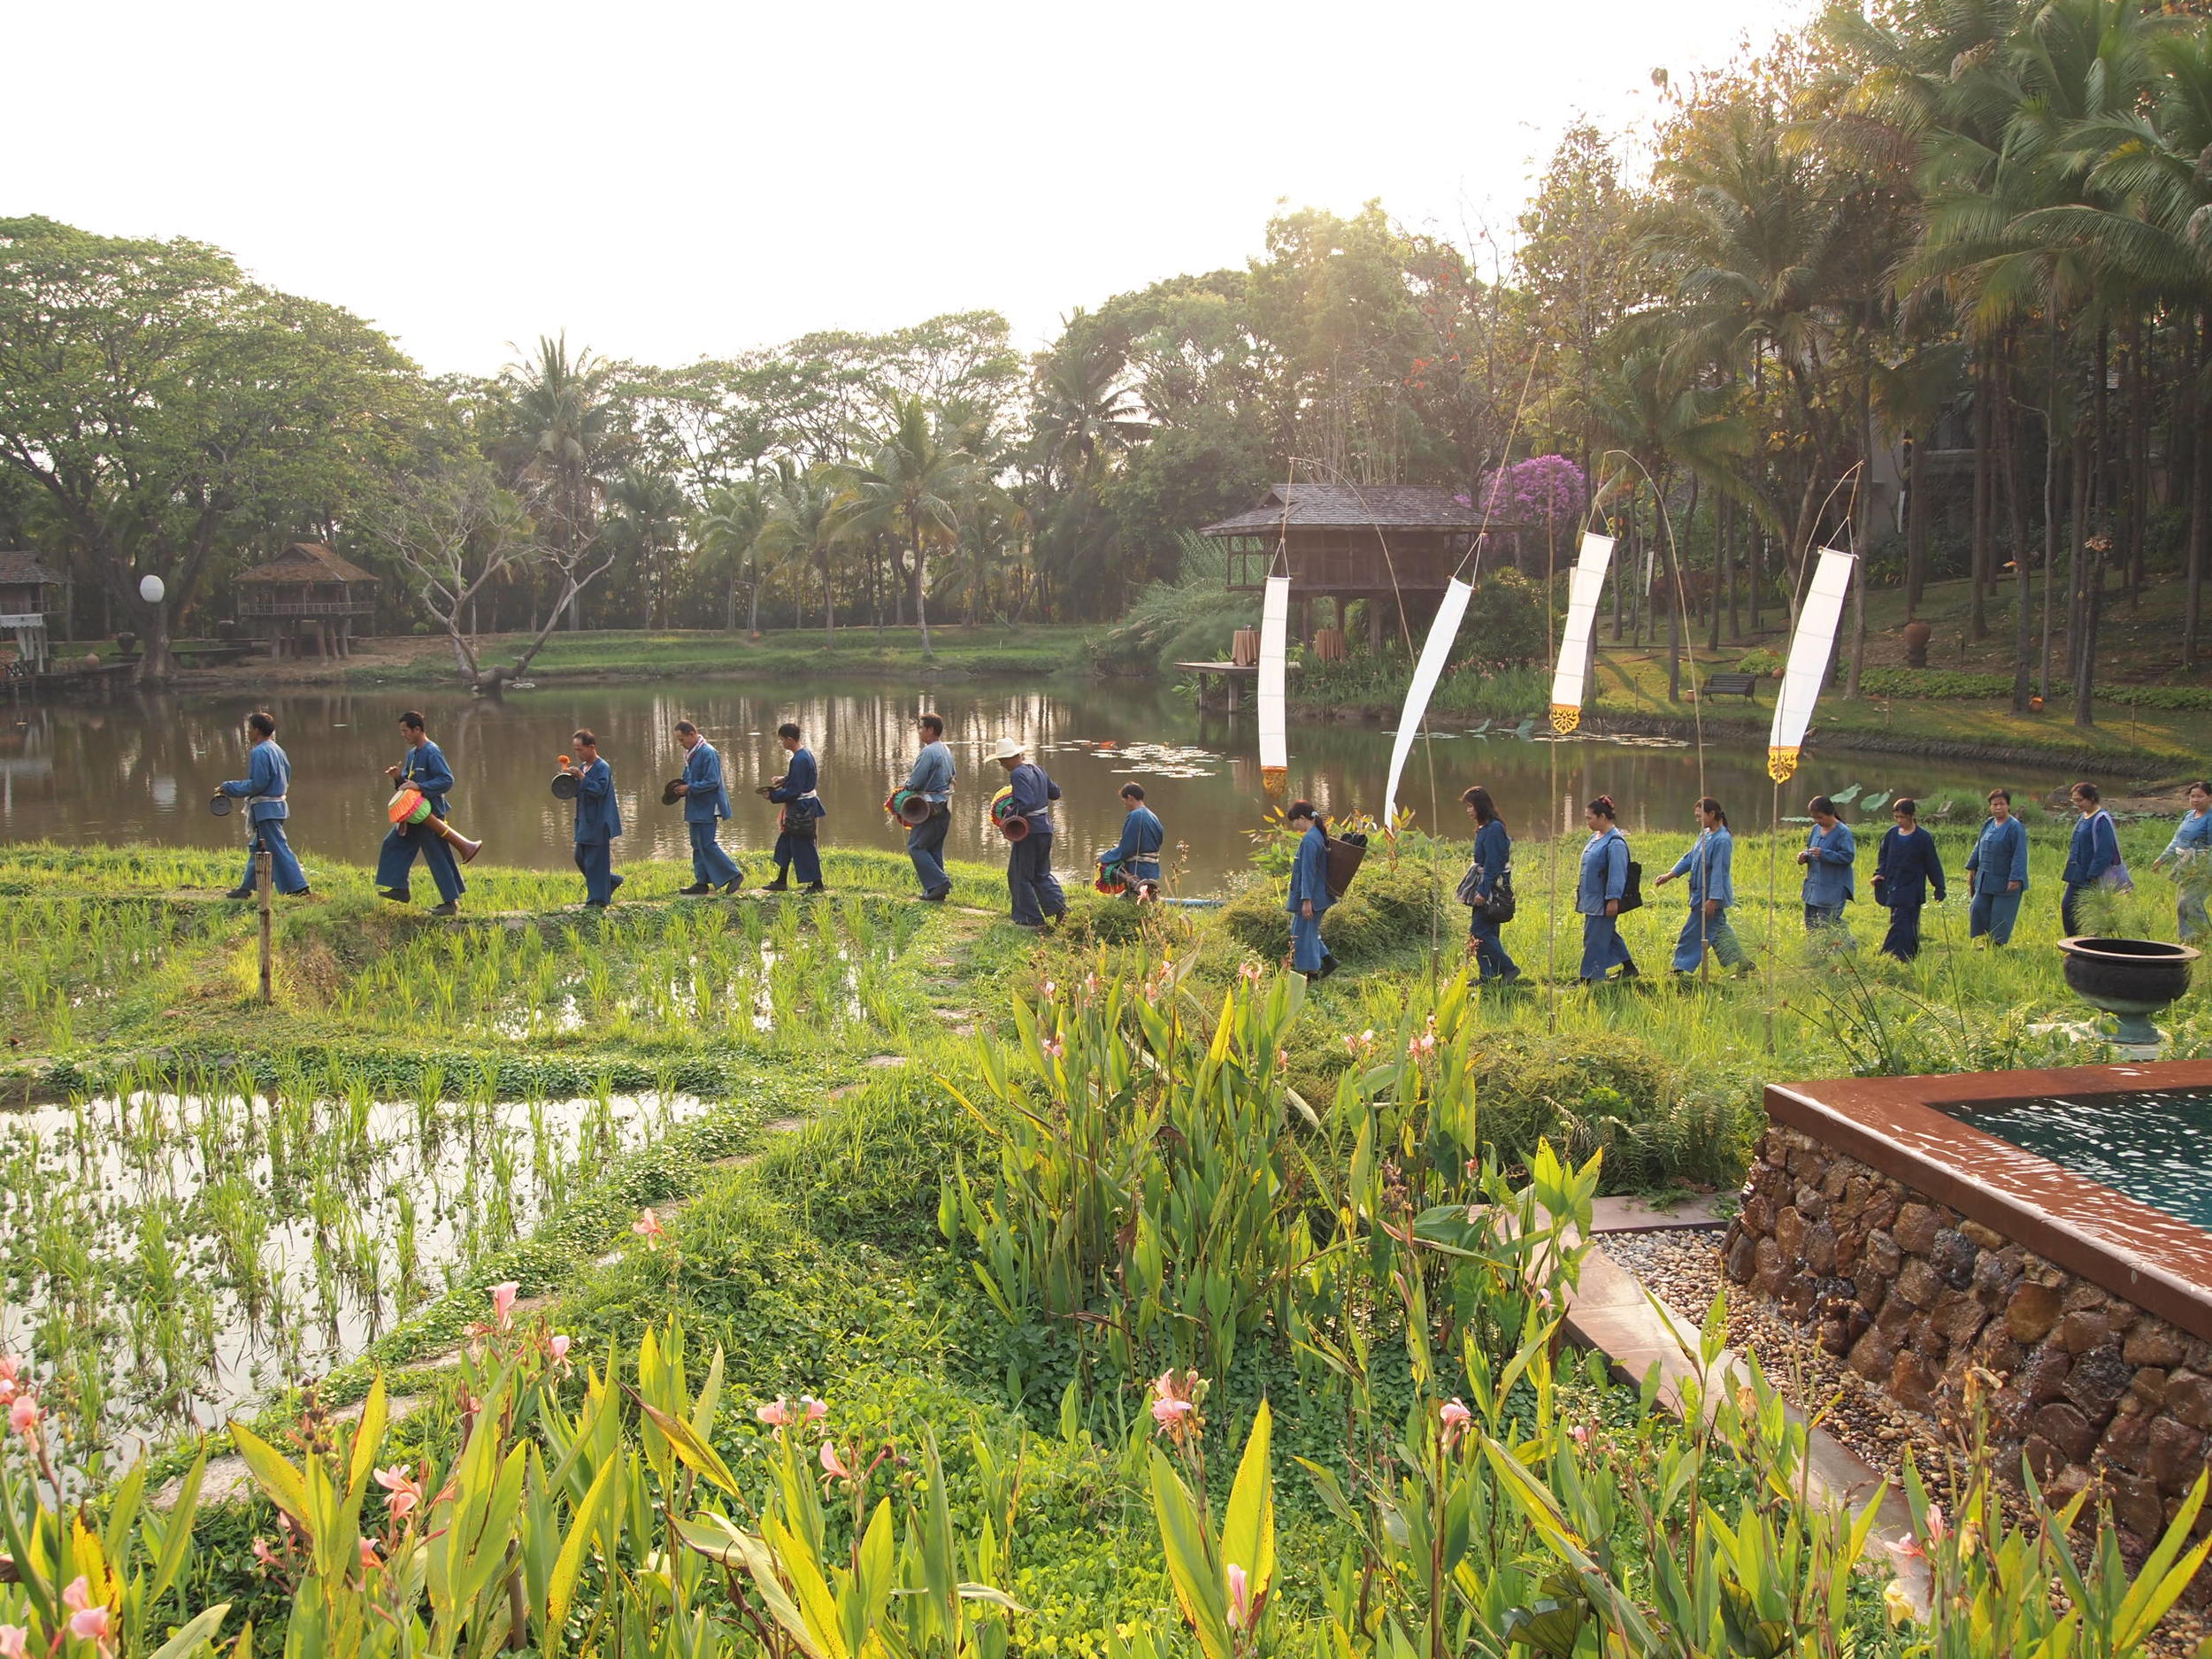 Thailand. Four Seasons Resort Chiang Mai. The rice paddy parade, an end-of-day procession happening every night at 4.50pm to commemorate the end of the work day on the resort's working rice field.